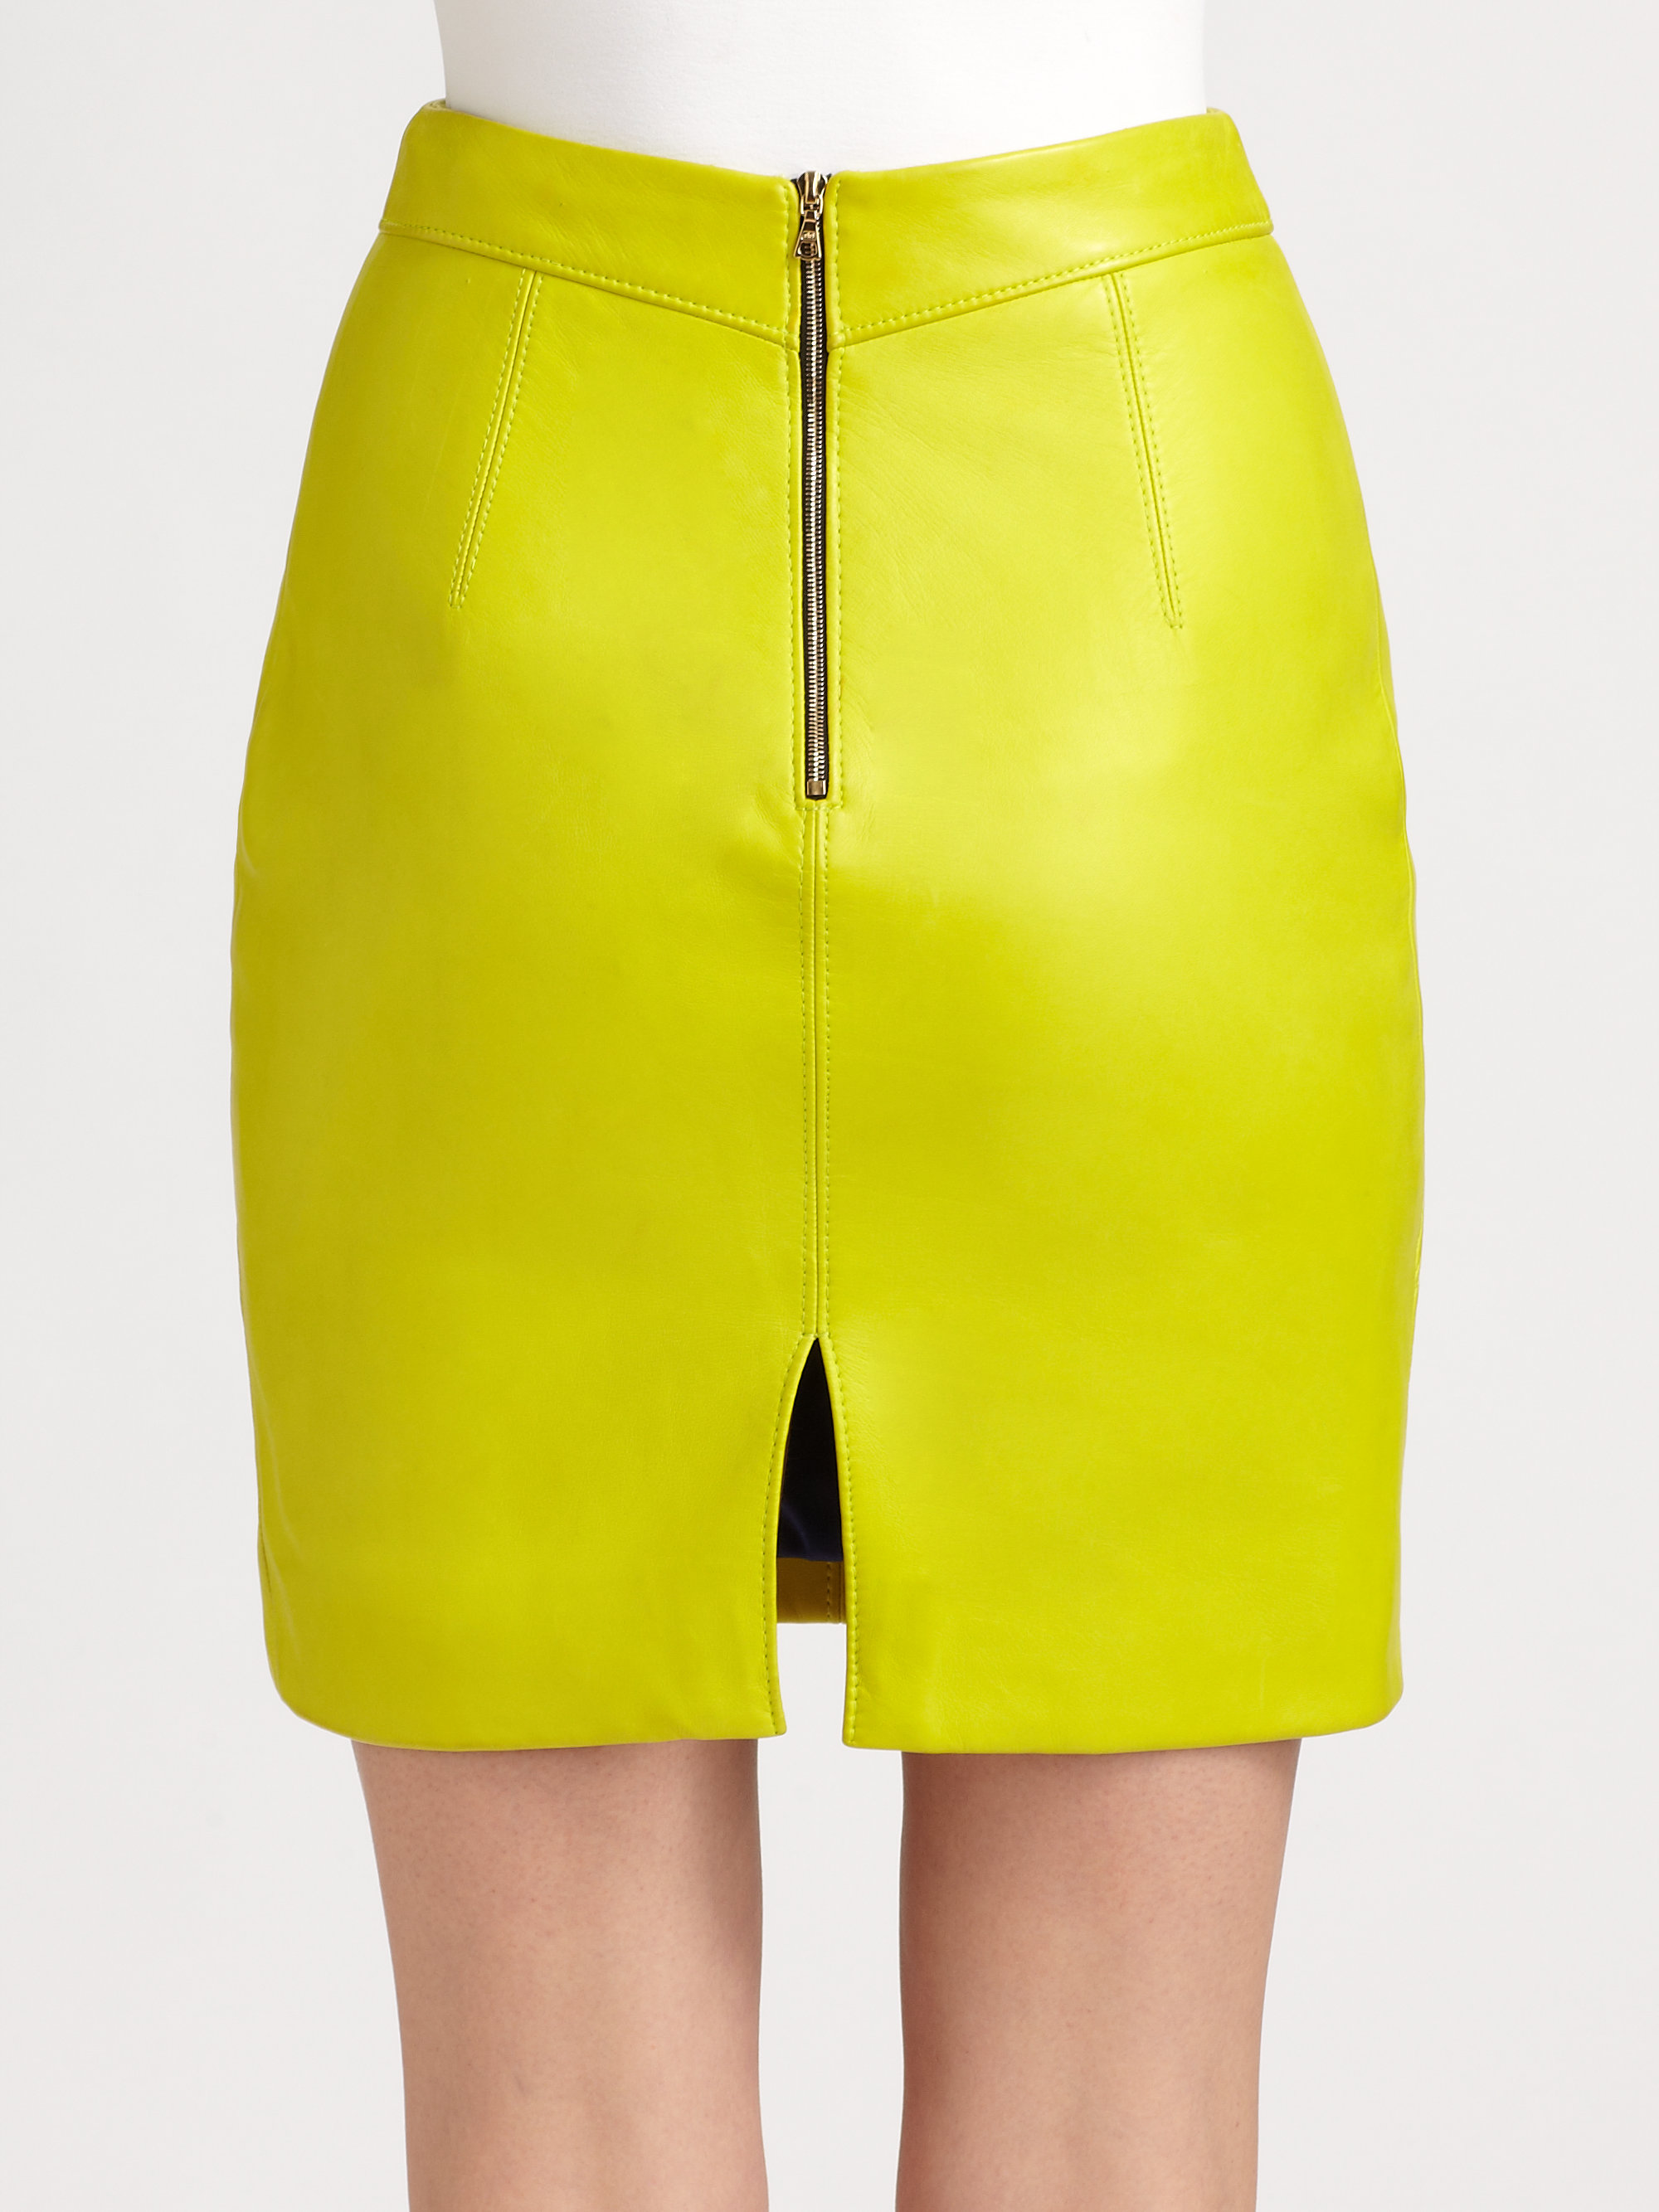 jason wu leather pencil skirt in yellow lyst